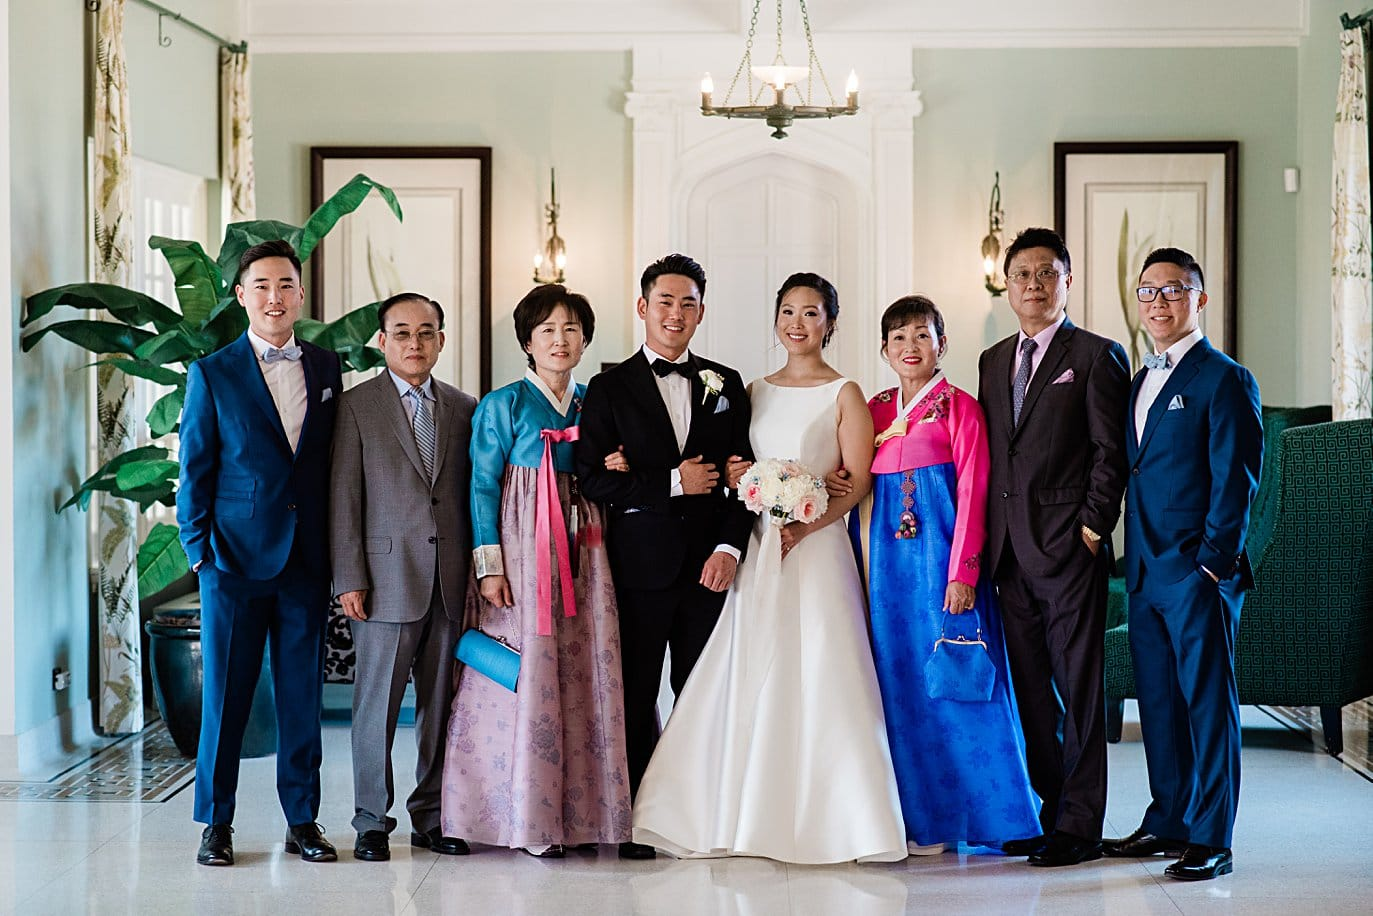 traditional korean wedding family photo at Highlands Ranch Mansion wedding by Golden wedding photographer Jennie Crate